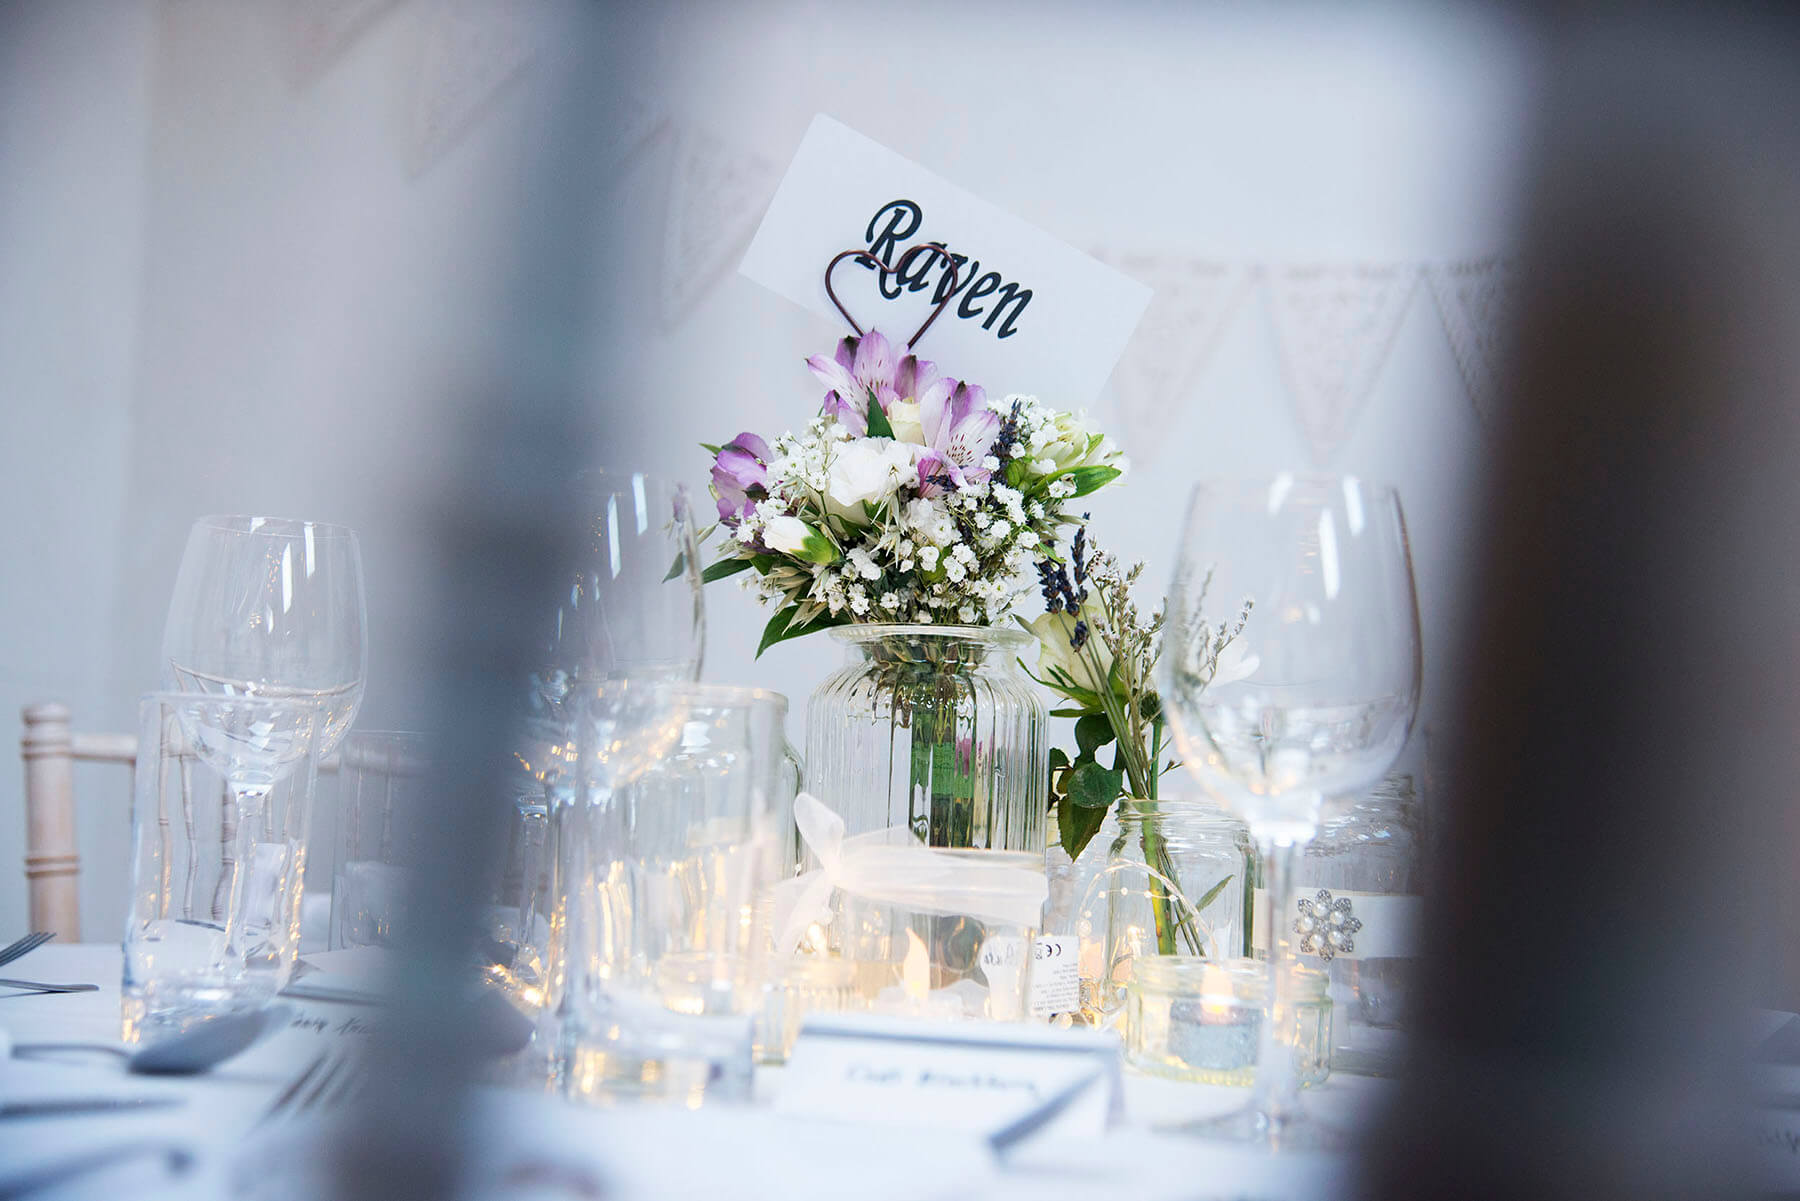 Table setting at a wedding reception with flowers